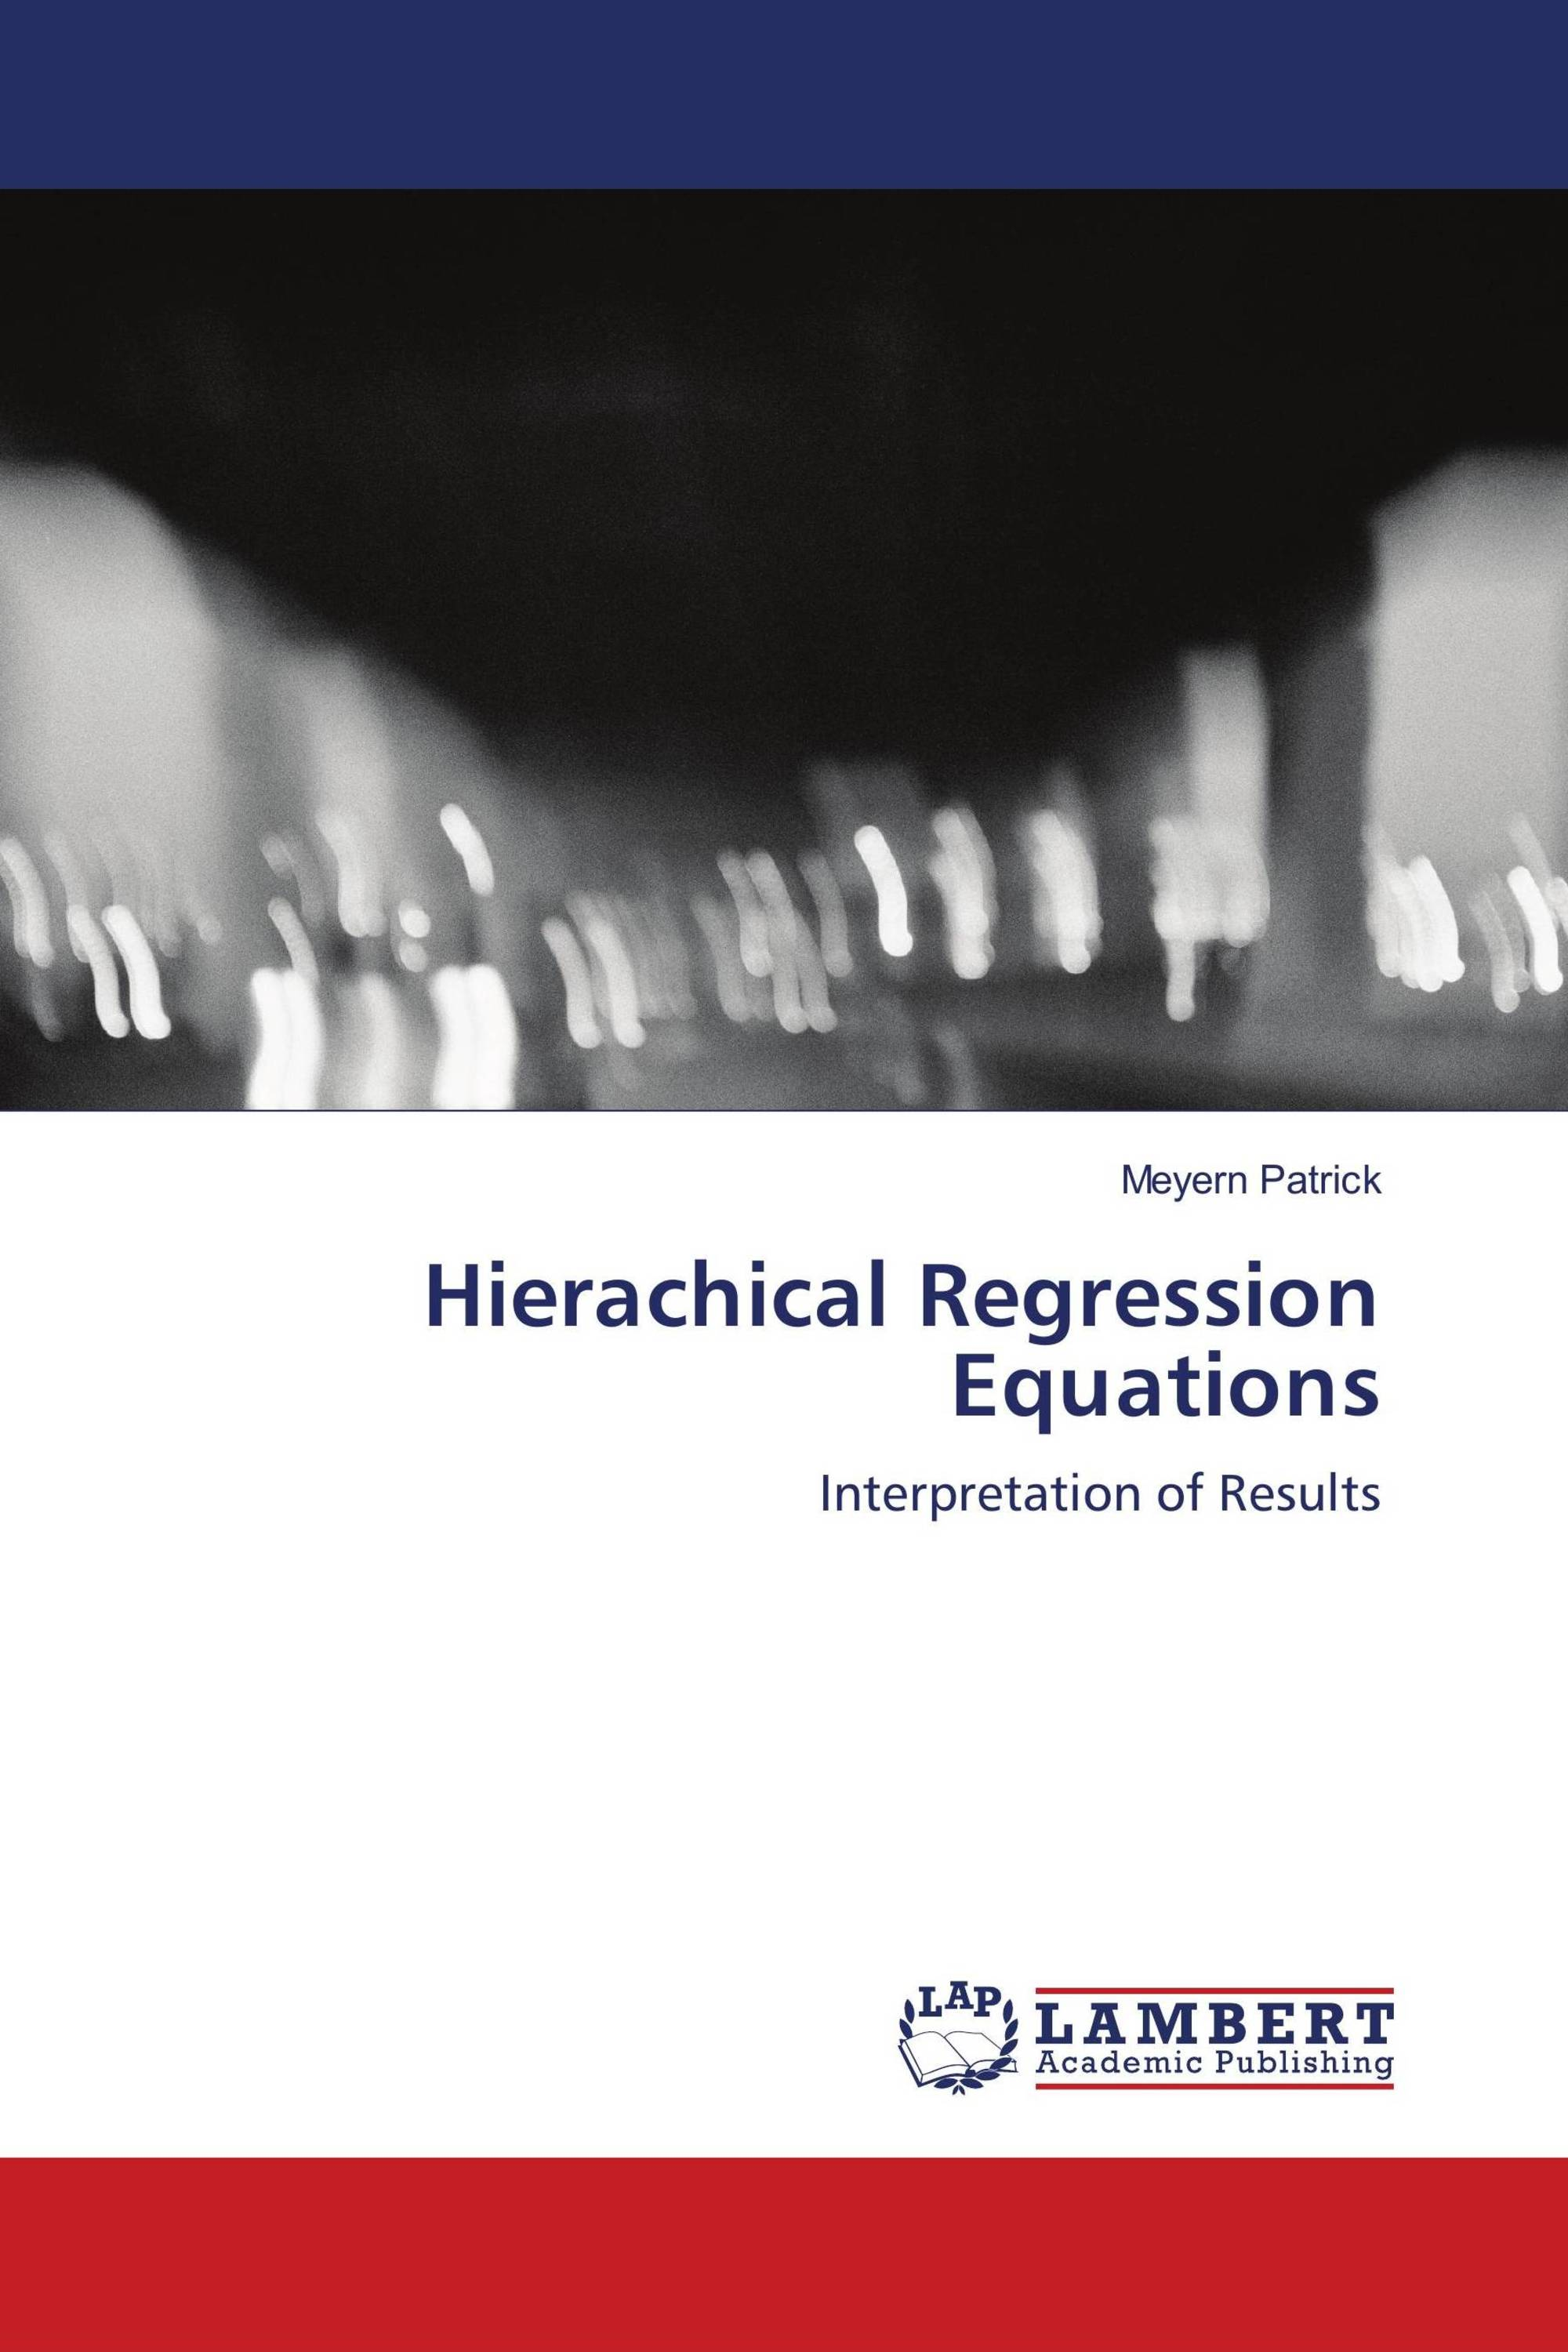 Hierachical Regression Equations